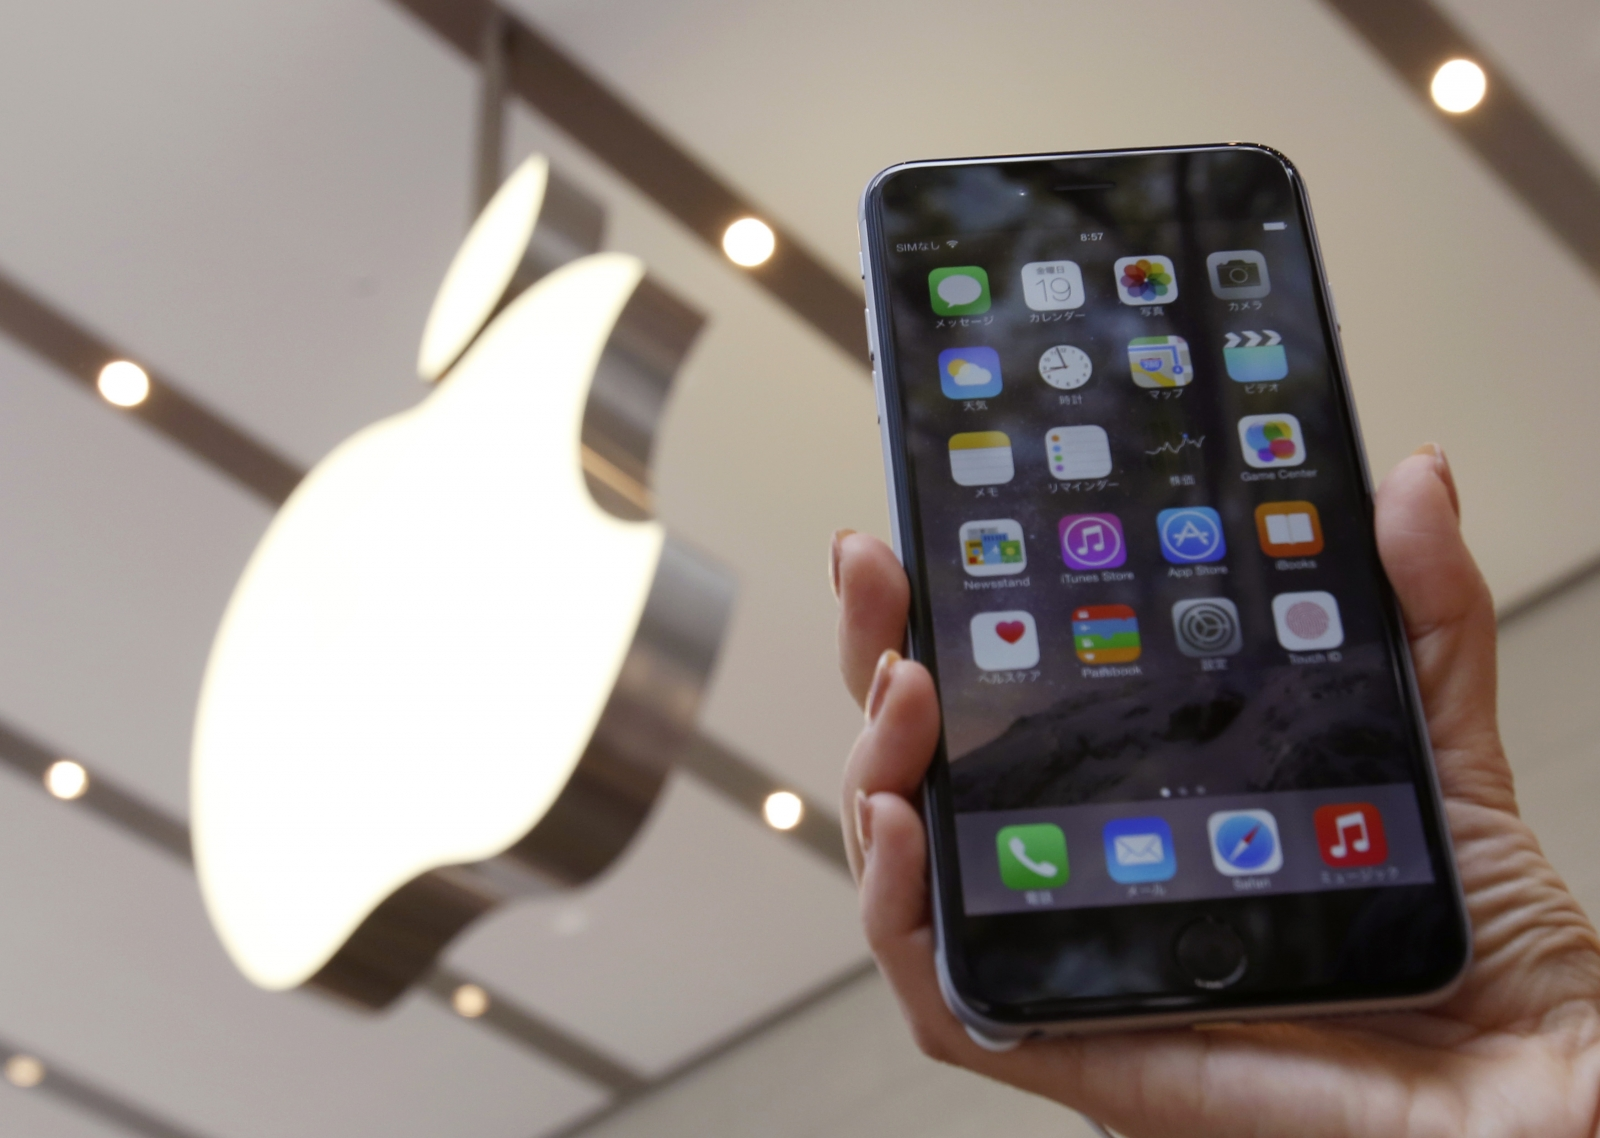 iPhone 6 iOS 9 security flaw